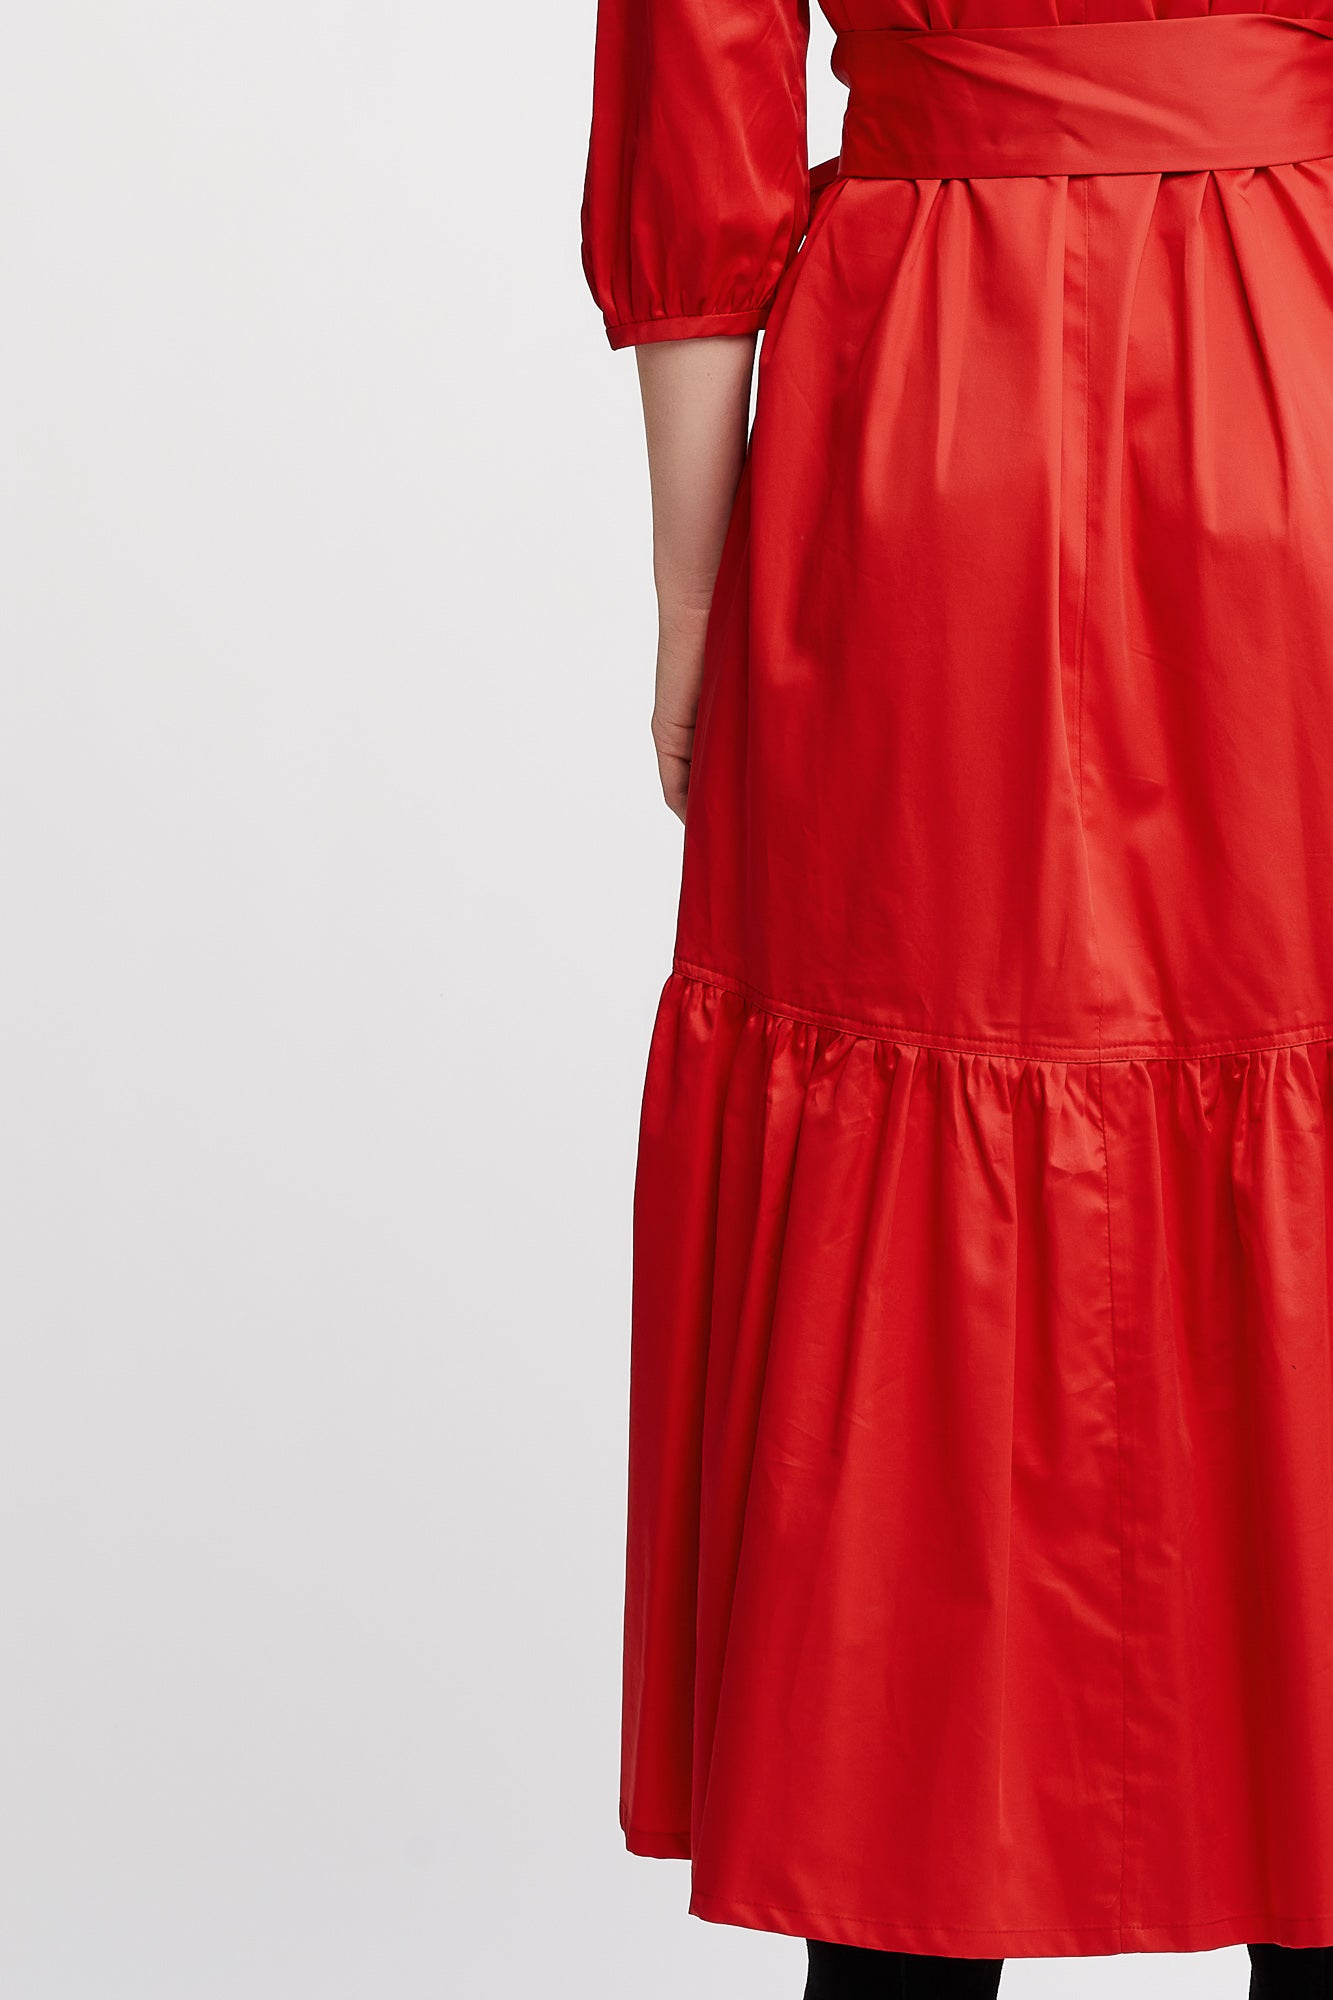 Berenice 3/4 sleeves Shift Day Dress with Belt in Red